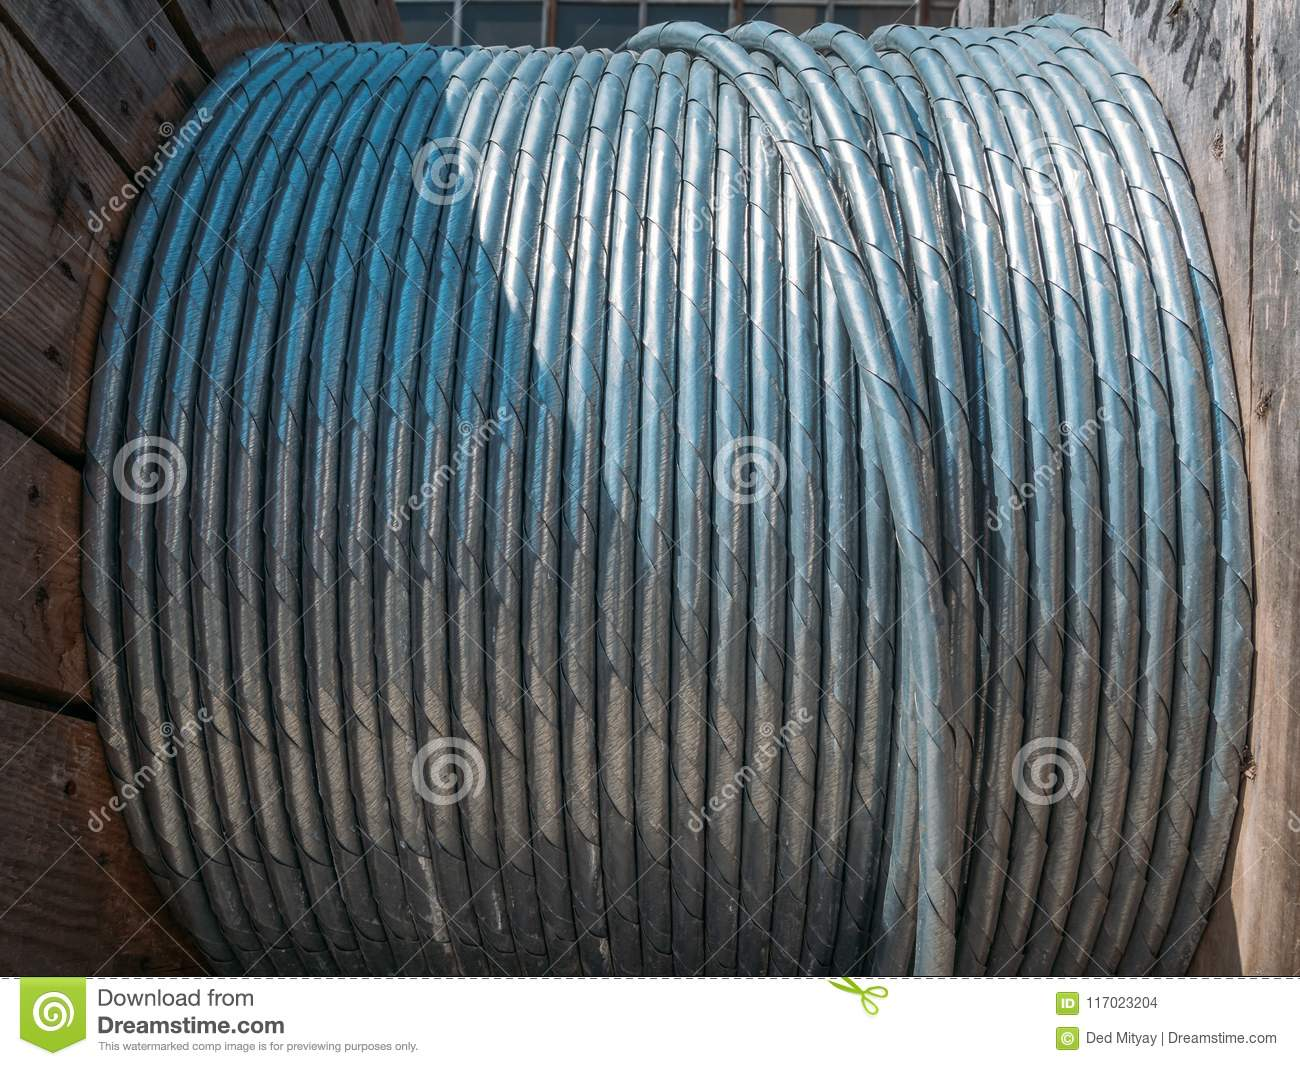 New Twisted Steel Cable Coil Wire Or Steel Rope, Industrial Metallic ...